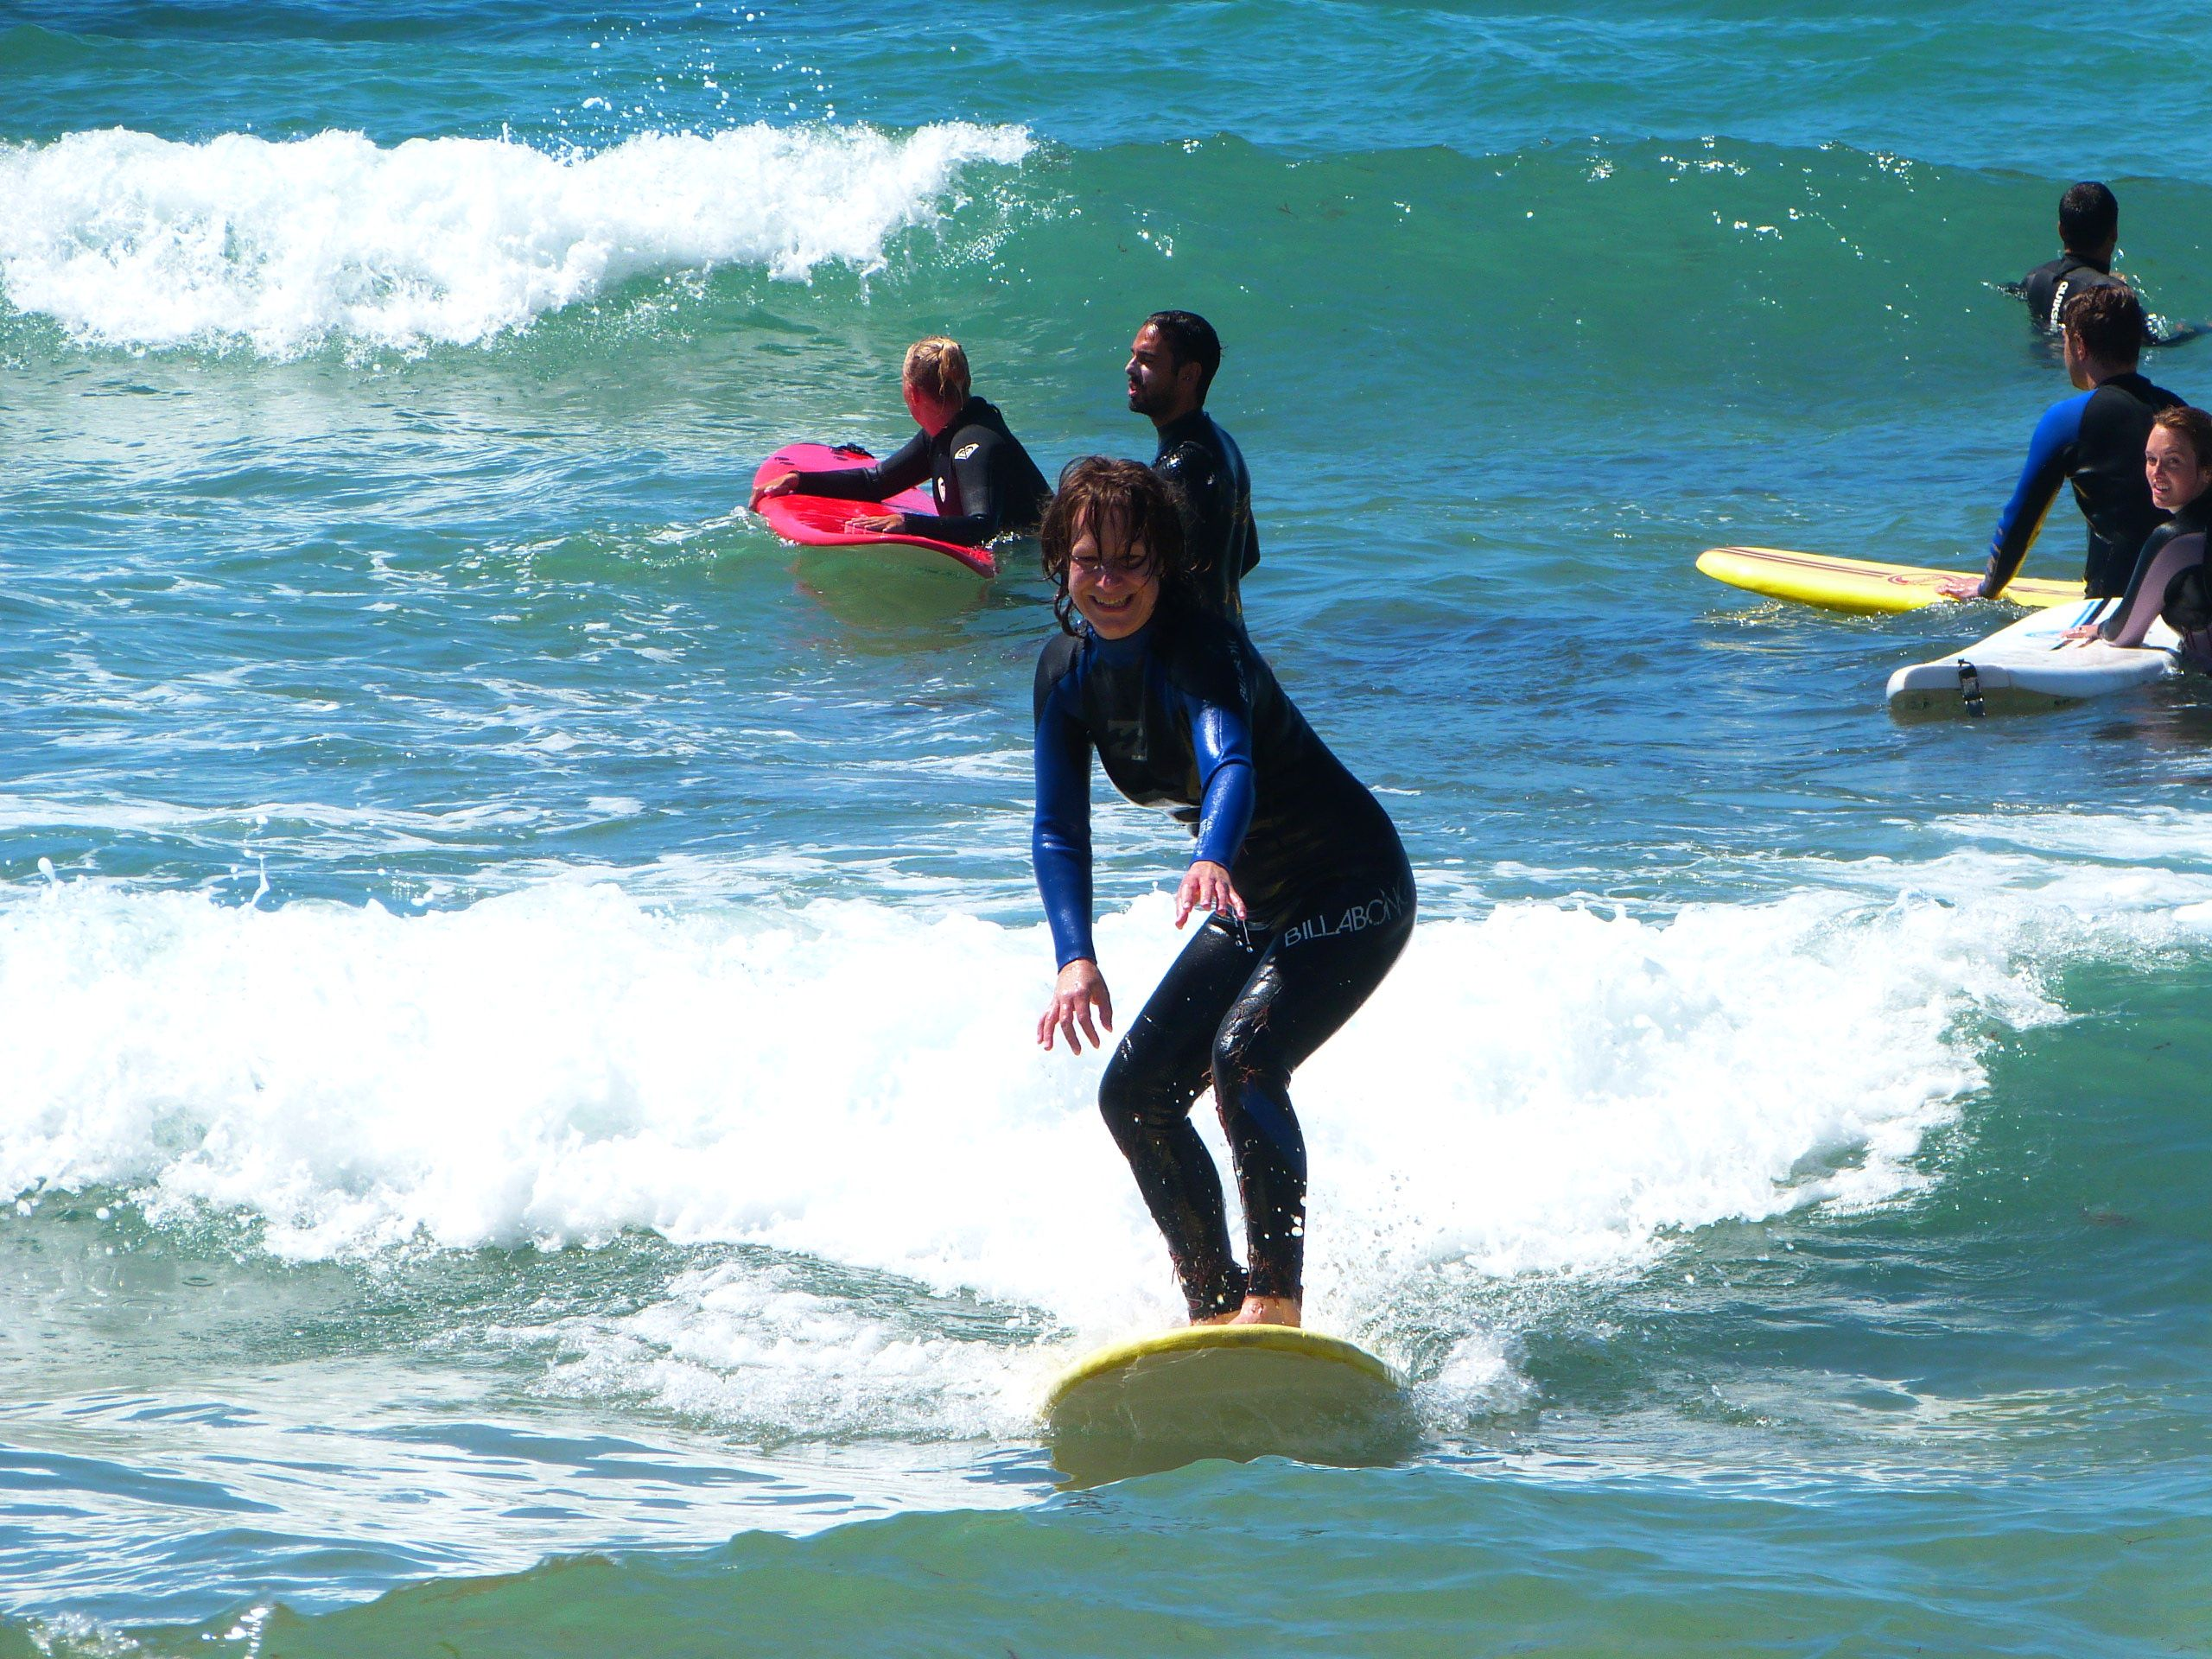 Surfing in Ericeira with @surfyoga <3